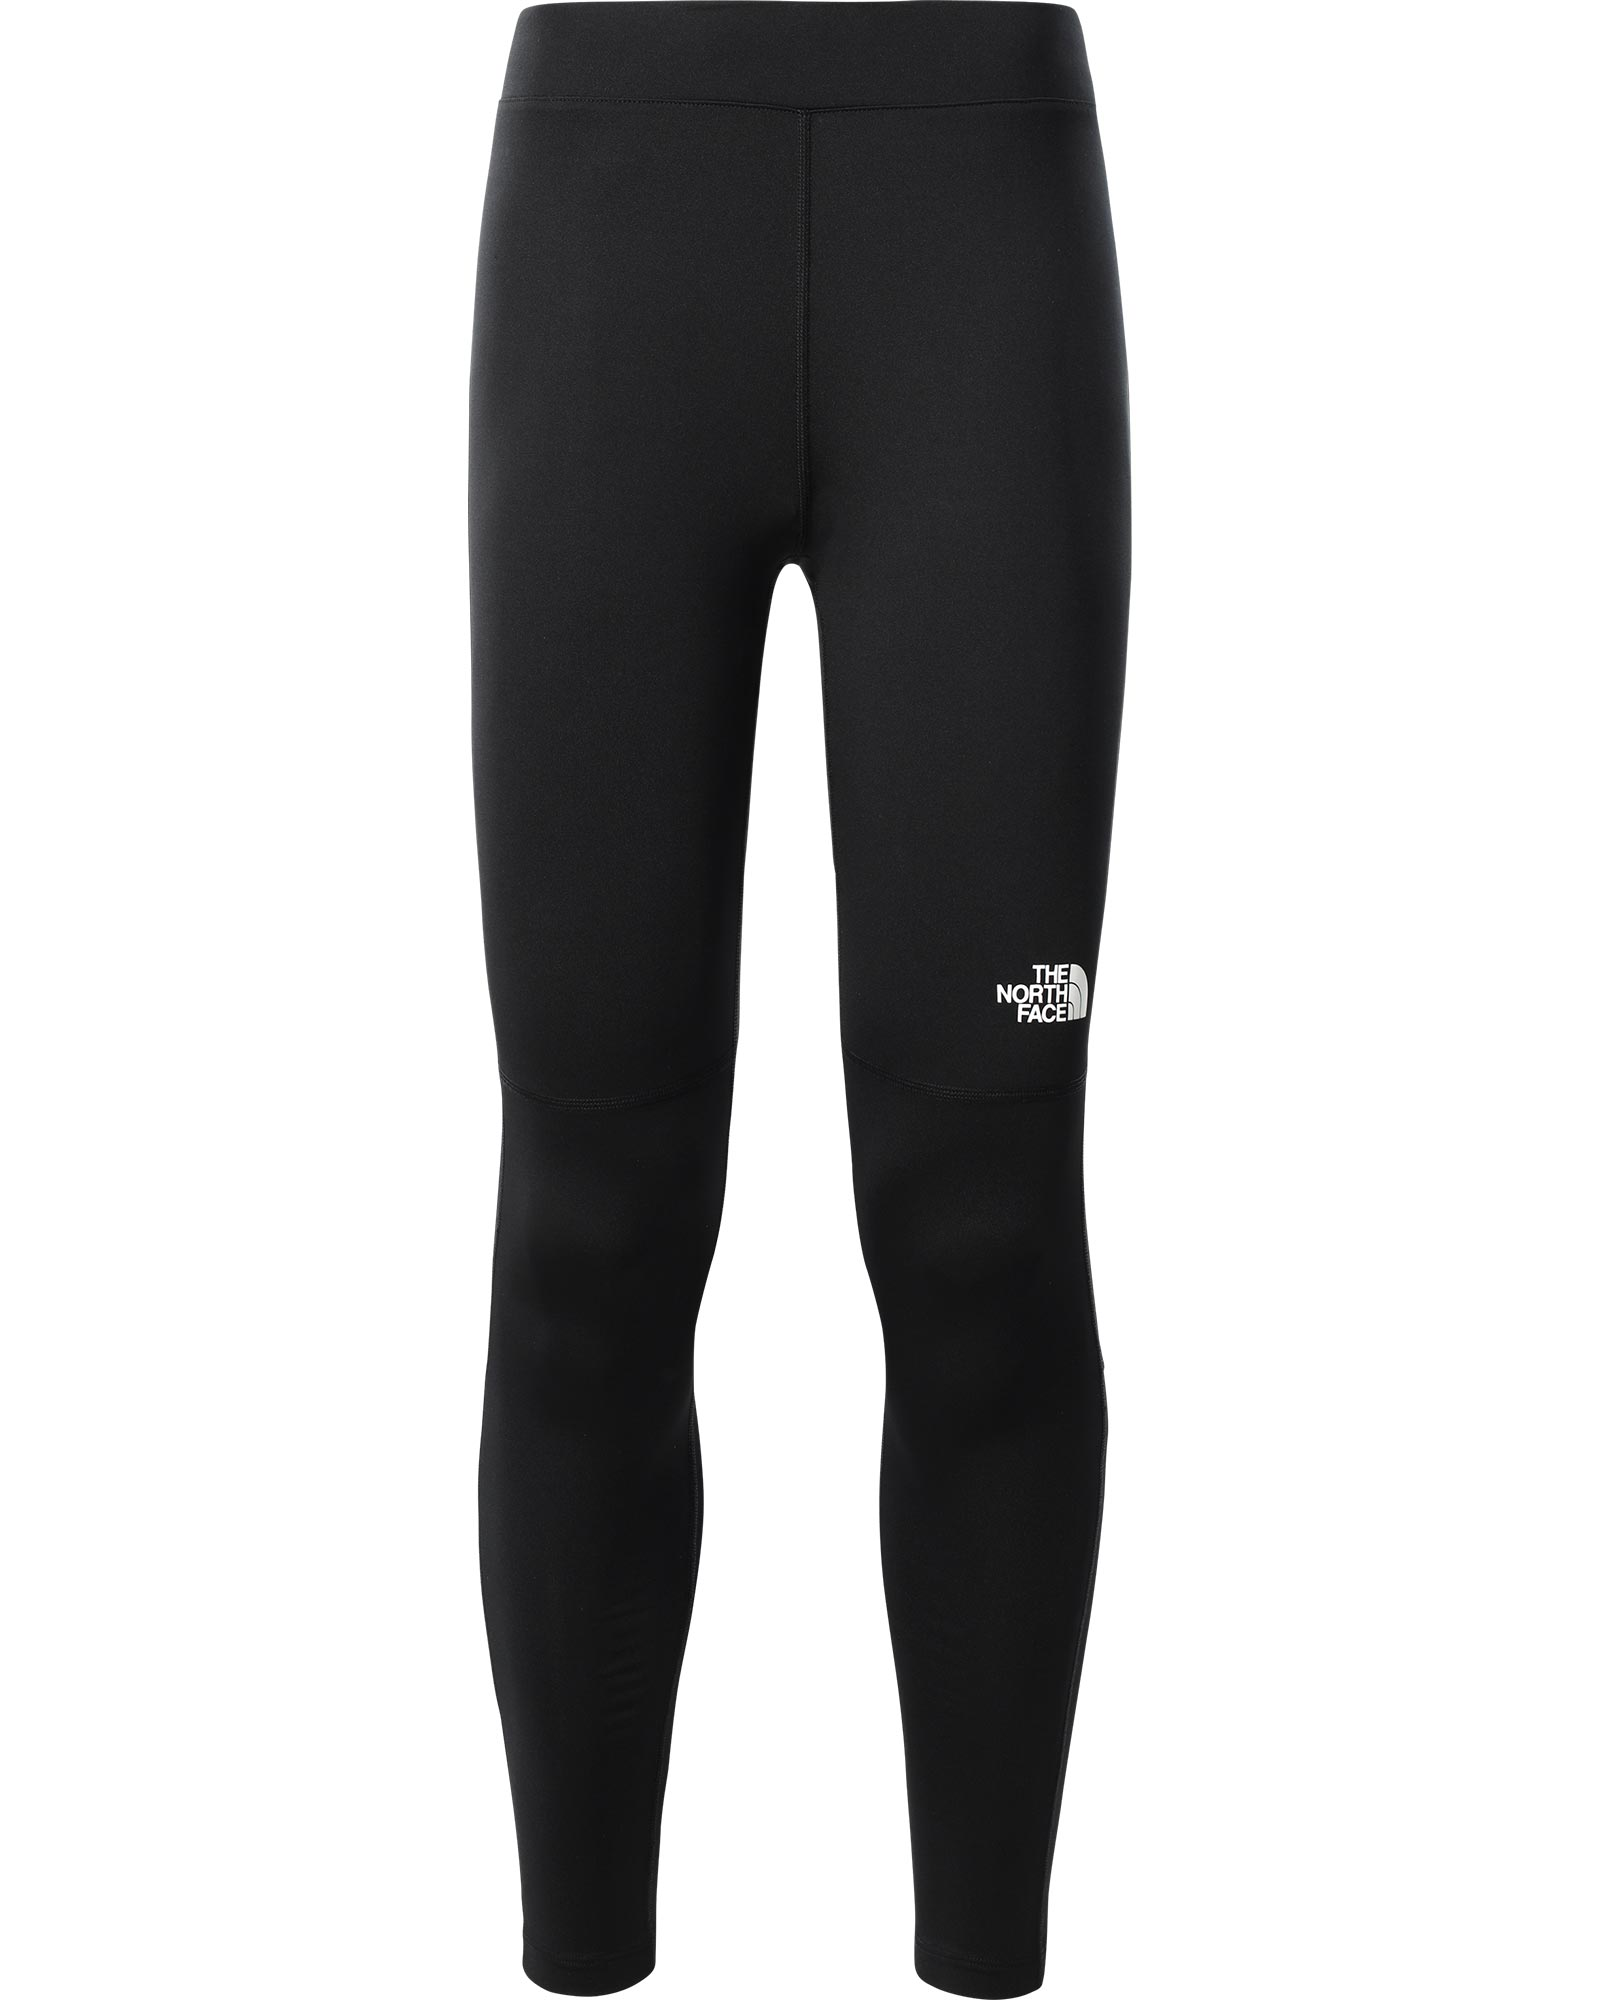 The North Face Women's MA Tights 0